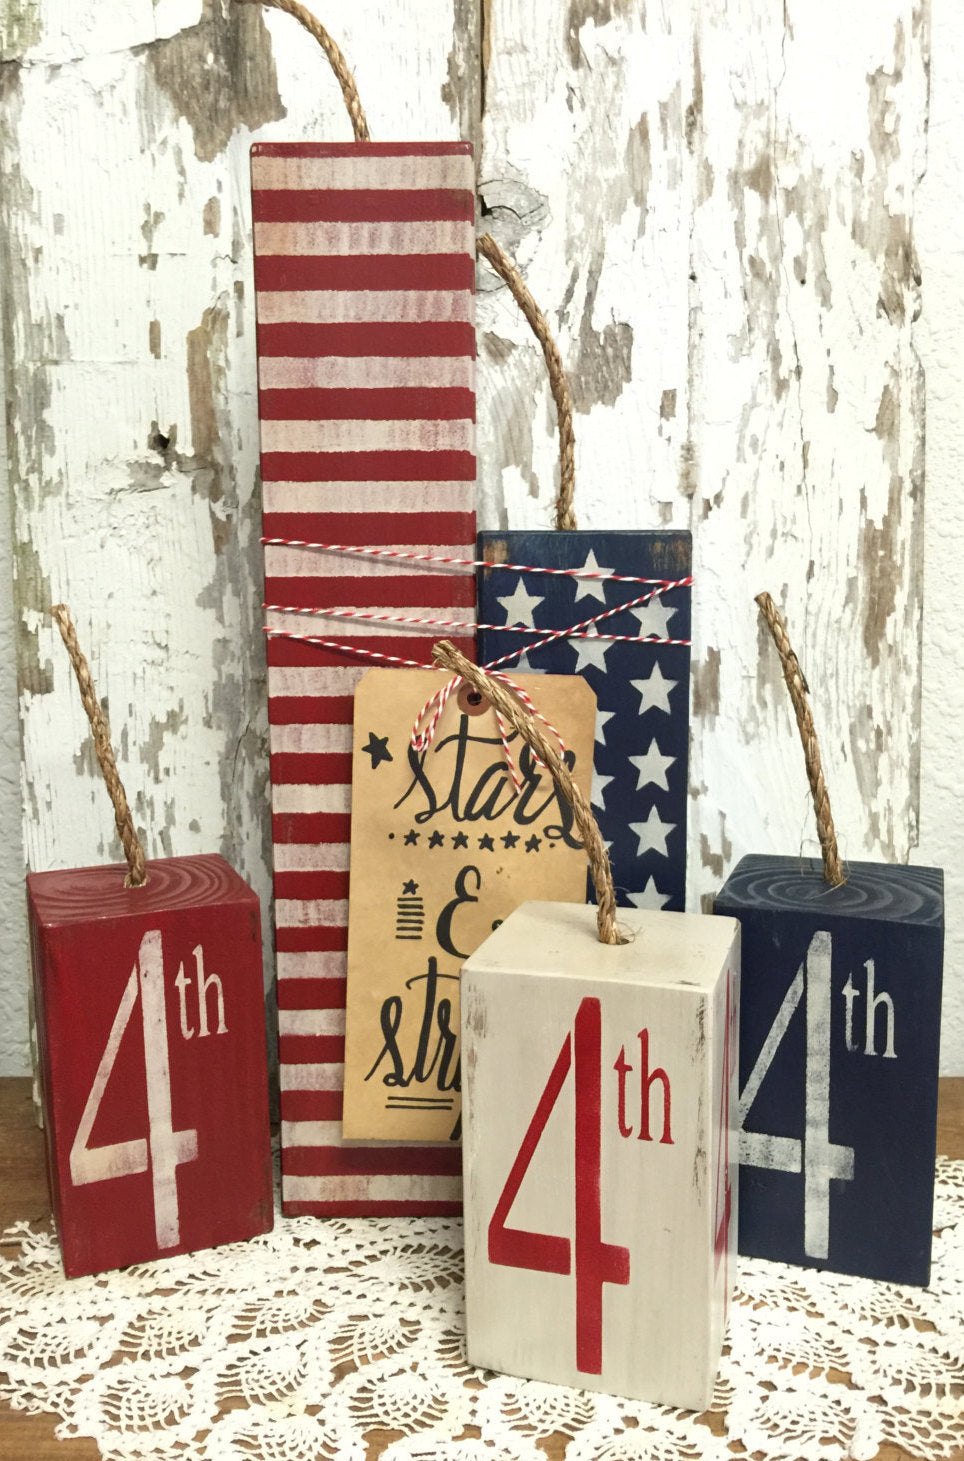 Fourth of July Decor - Fourth of July Decorations - Firecrackers - Primitive Decor - Rustic Home Decor - American Flag - Americana - Set of 3